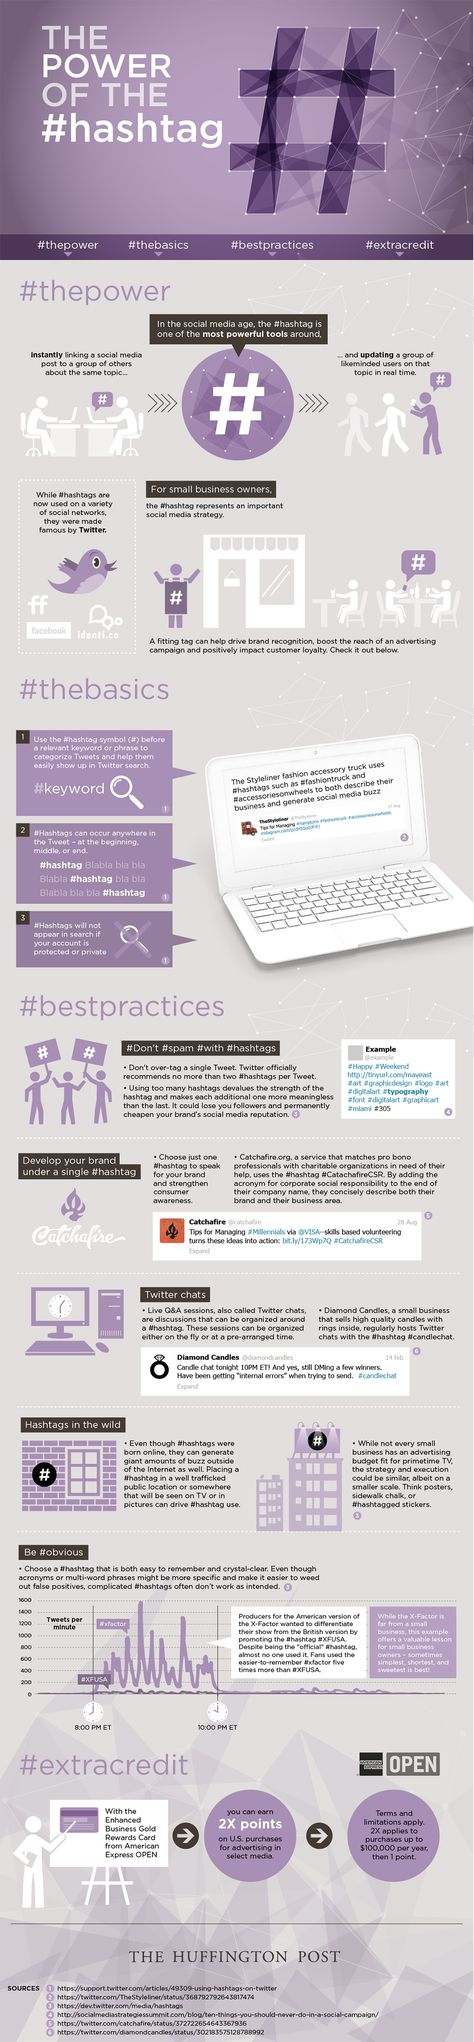 The Power of Hashtags [Infographic] - Social Media Marketing